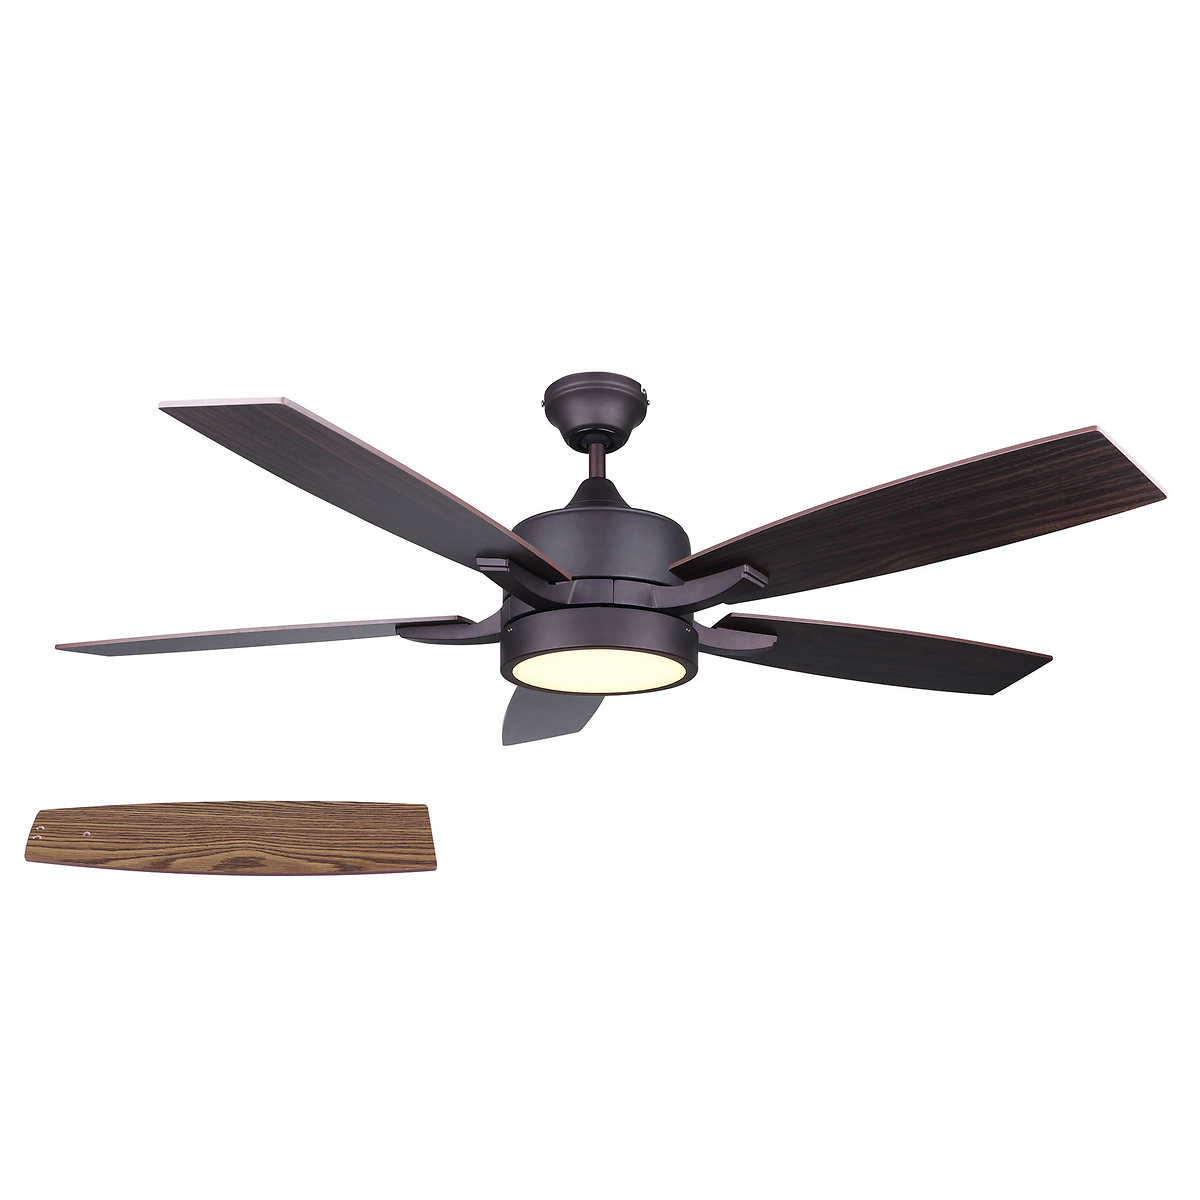 depot fan bronze p outdoor led at ceiling fans canada and channelside costco accessories the inch categories noble home en lighting